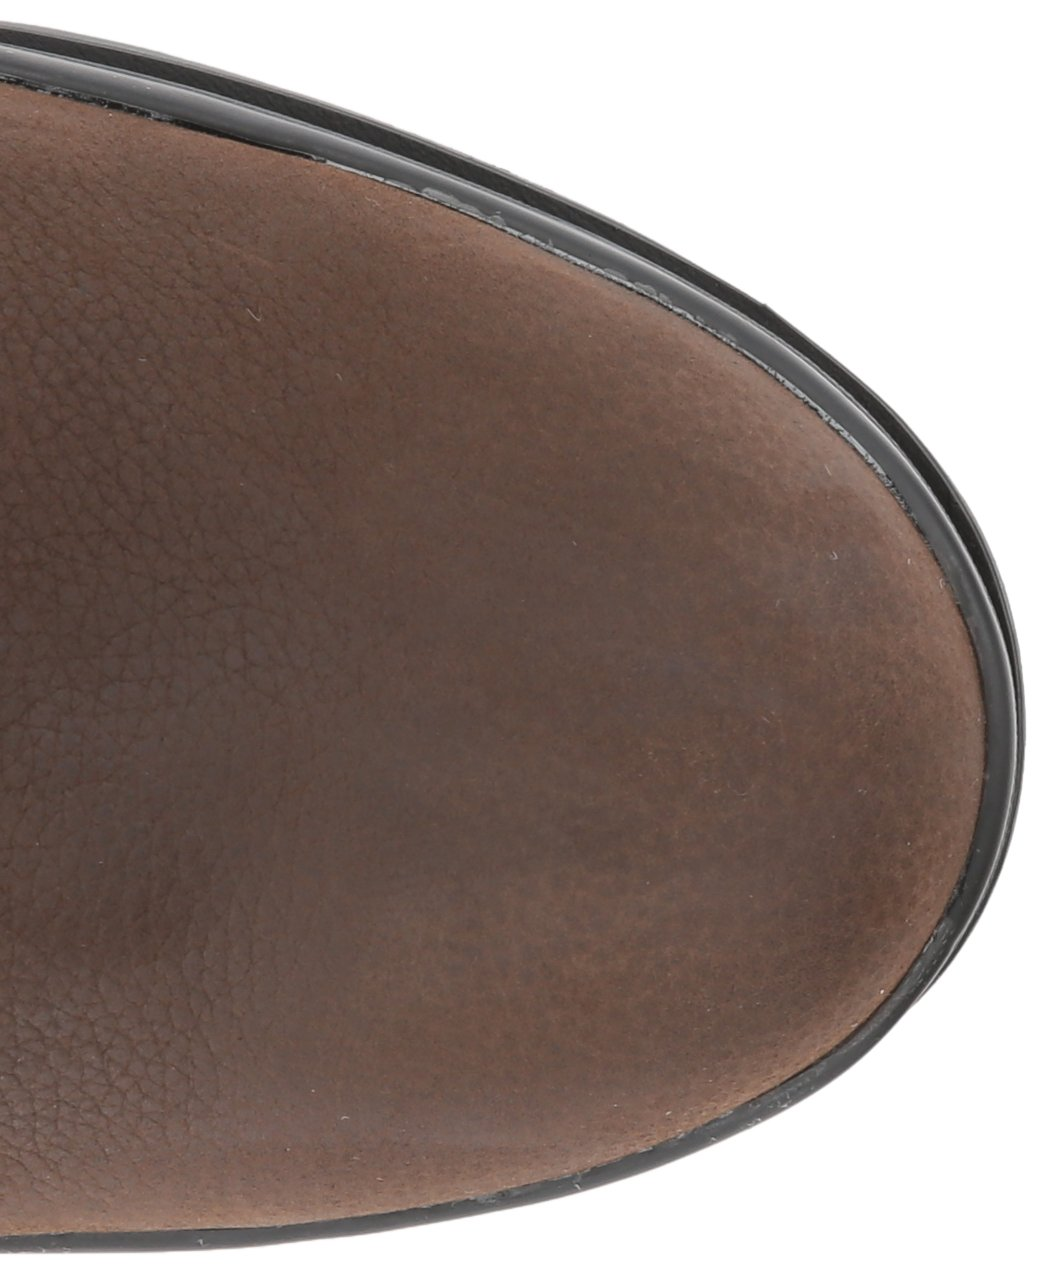 Ariat Women's Wythburn H2O Insulated Country Boot, Java, 7.5 B US by Ariat (Image #8)